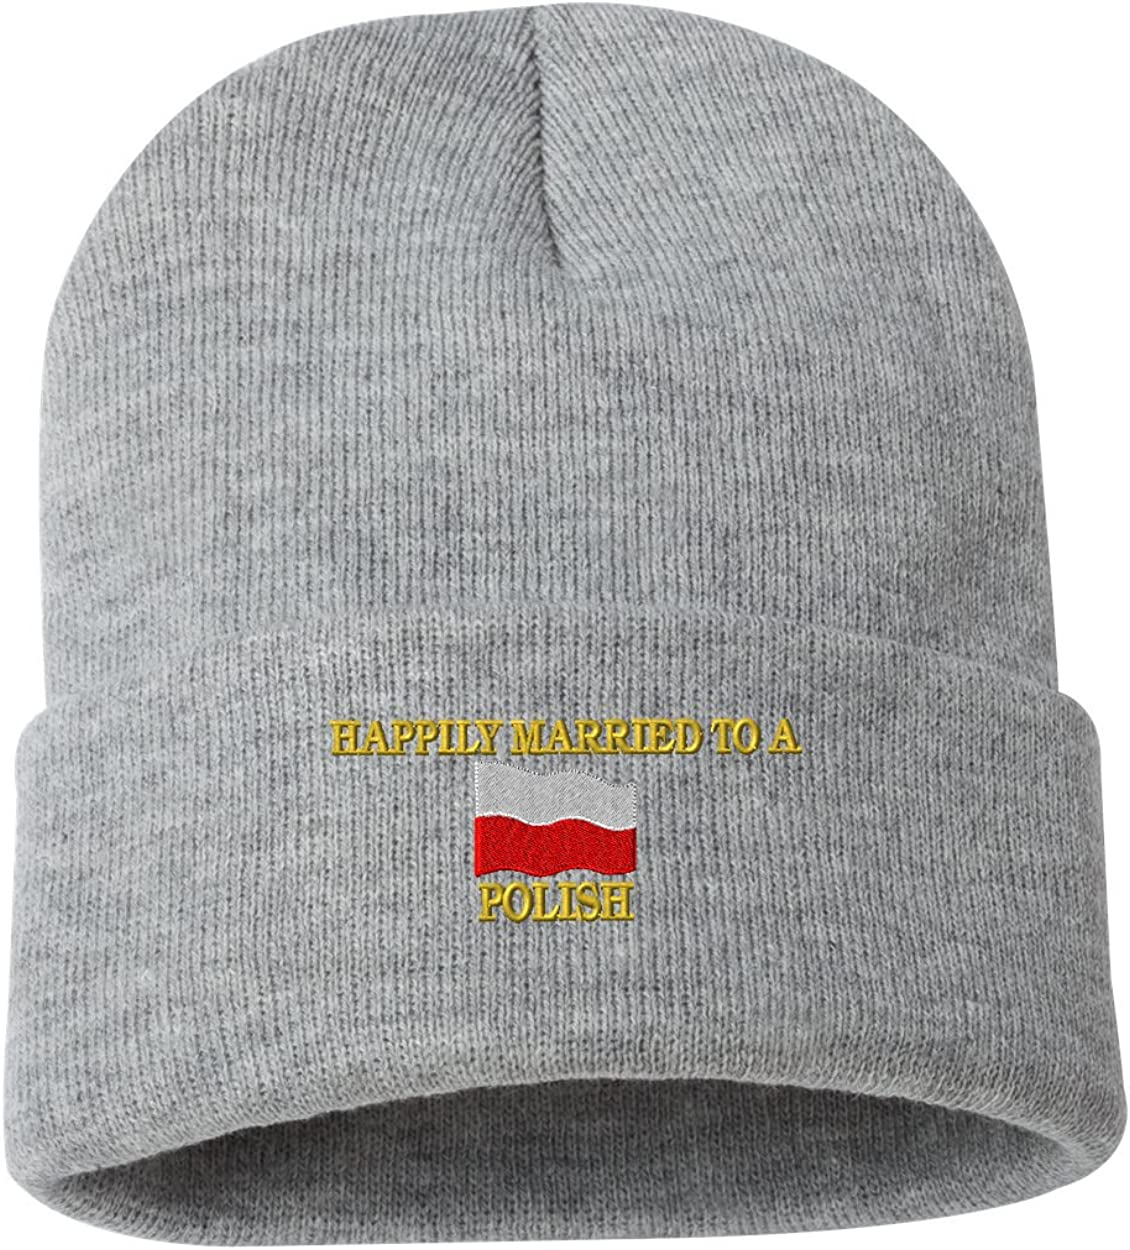 HAPPILY MARRIED TO A POLISH Custom Personalized Embroidery Embroidered Beanie